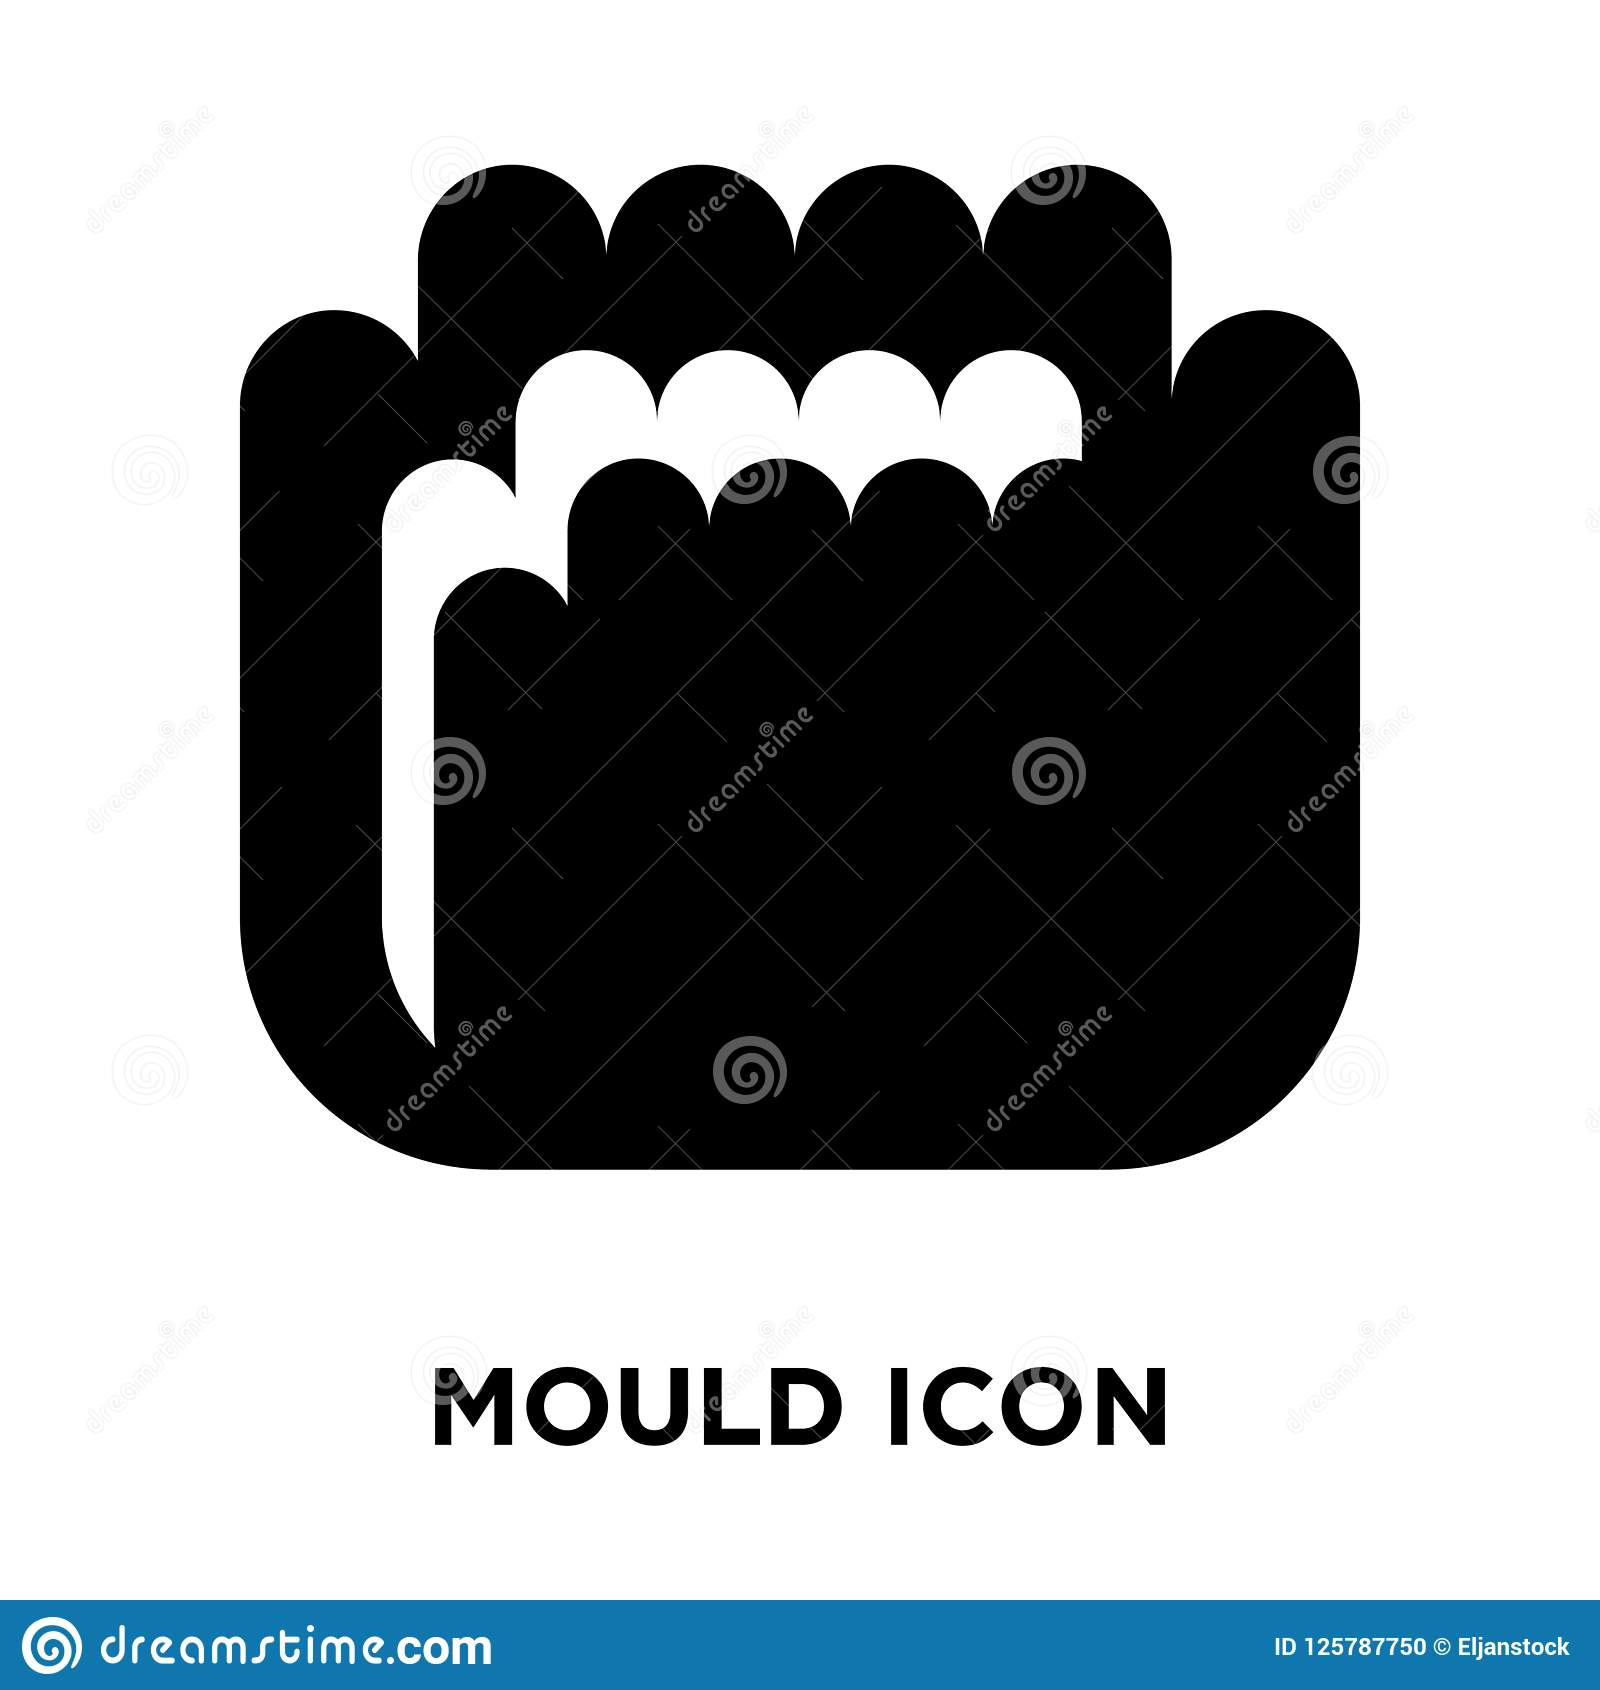 Mould icon vector isolated on white background, logo concept of